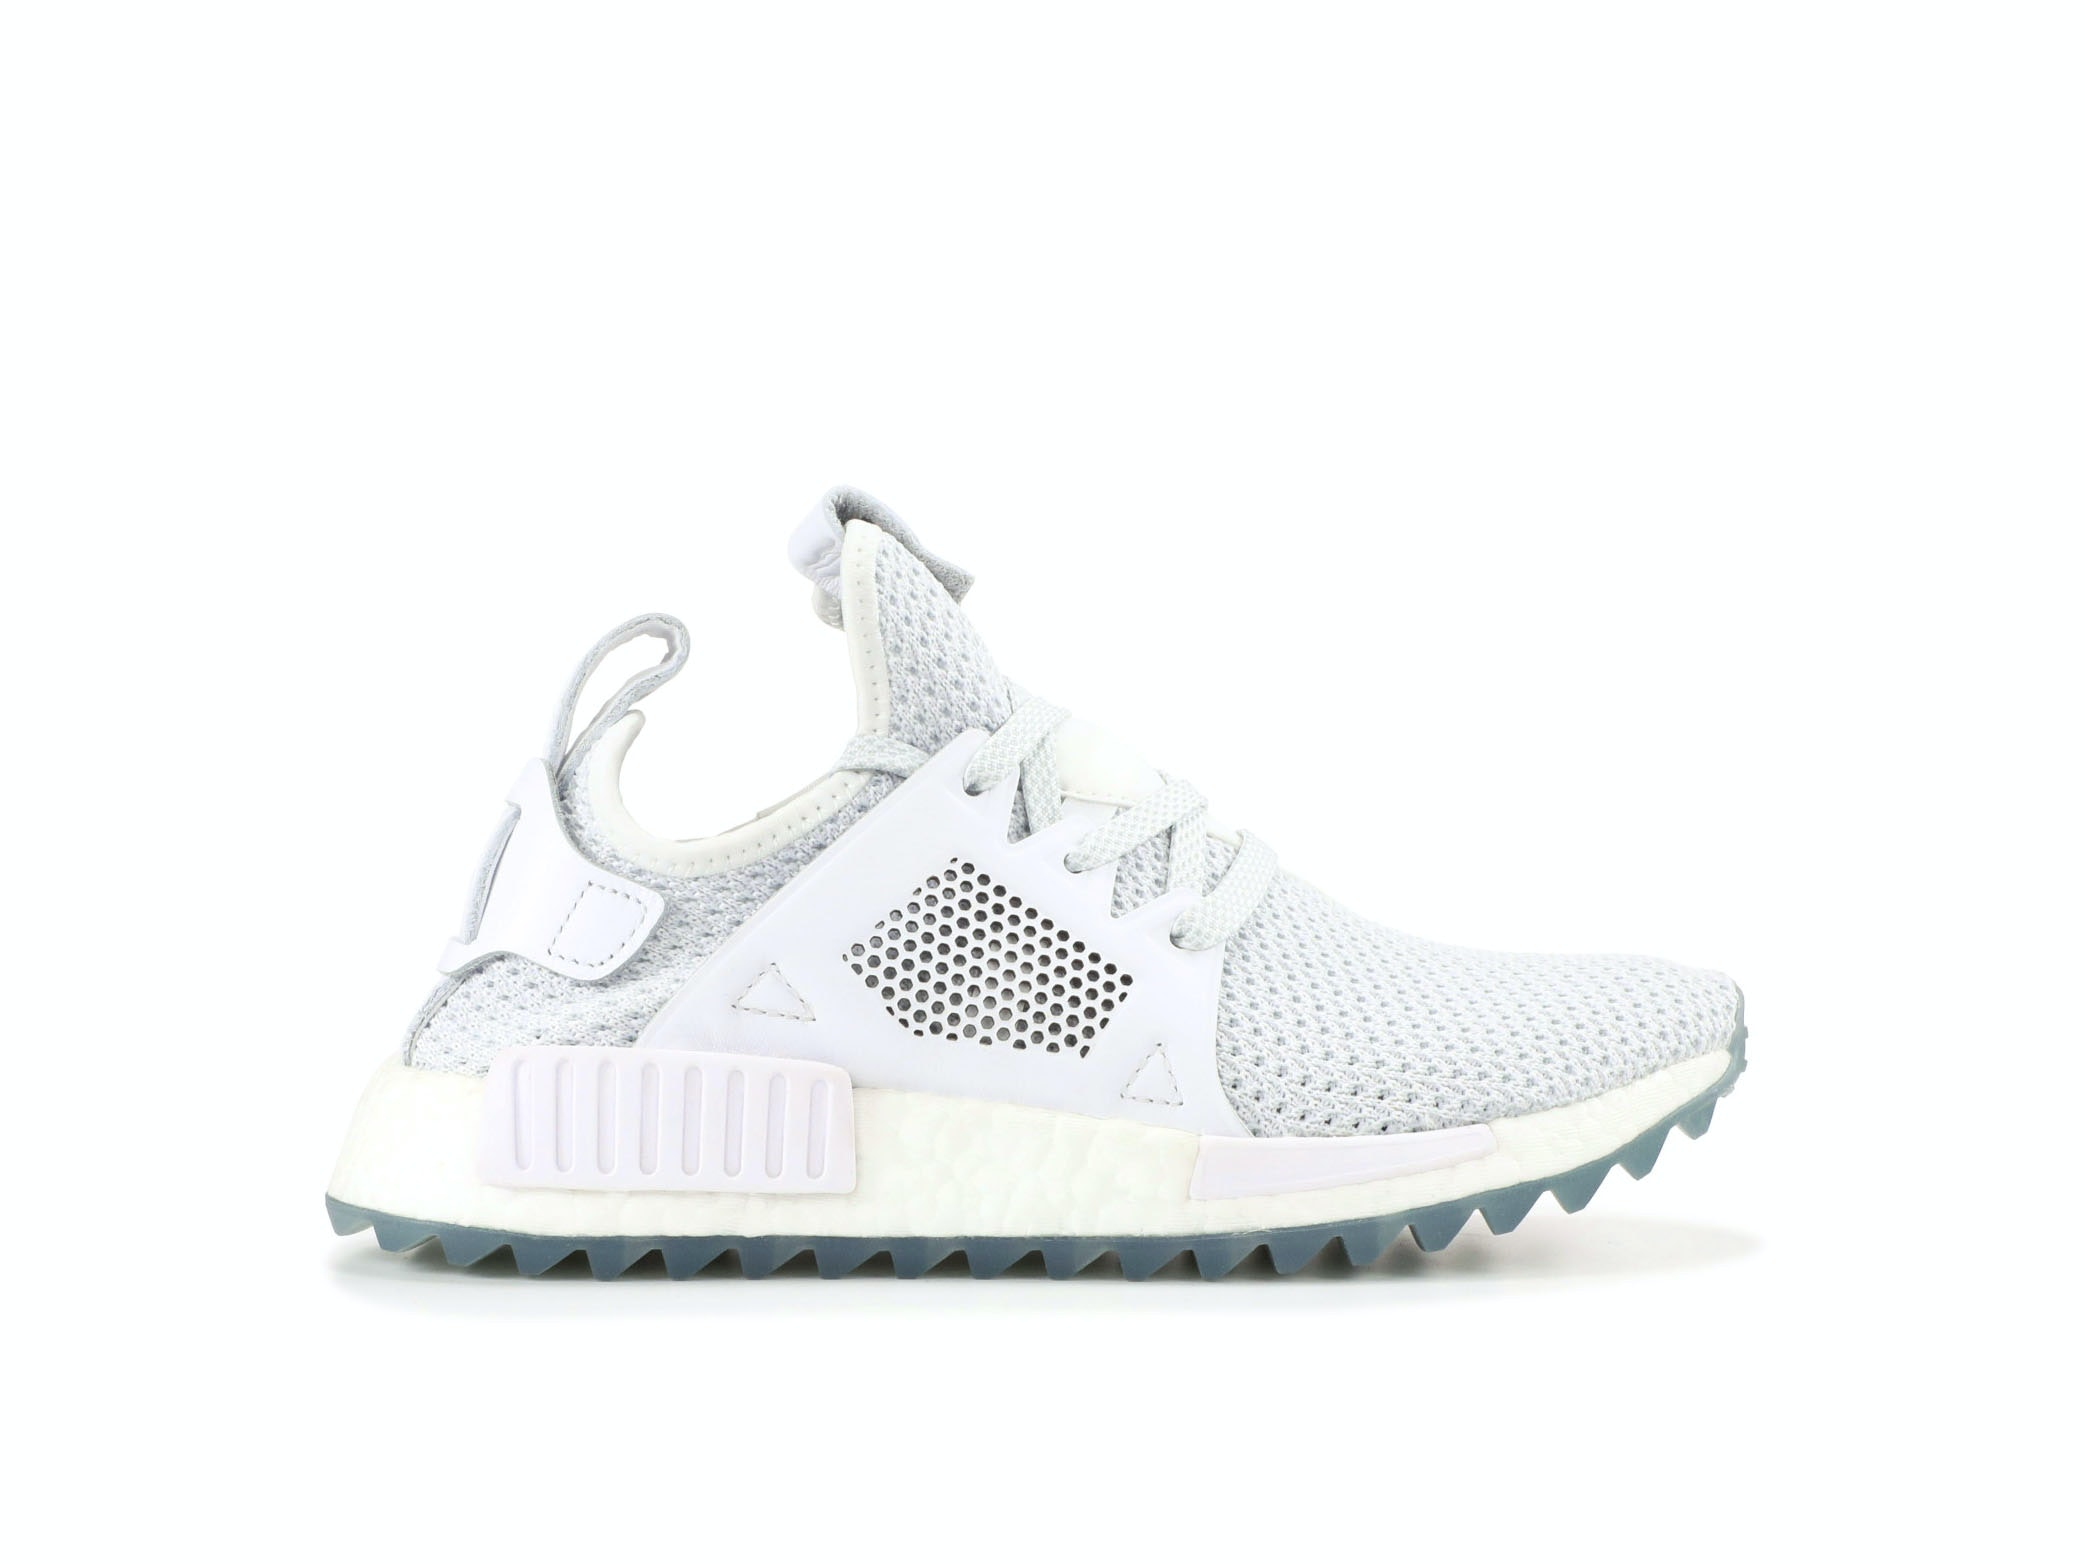 41ed7bbfd Shop Celestial NMD XR1 Trail x Titolo Online